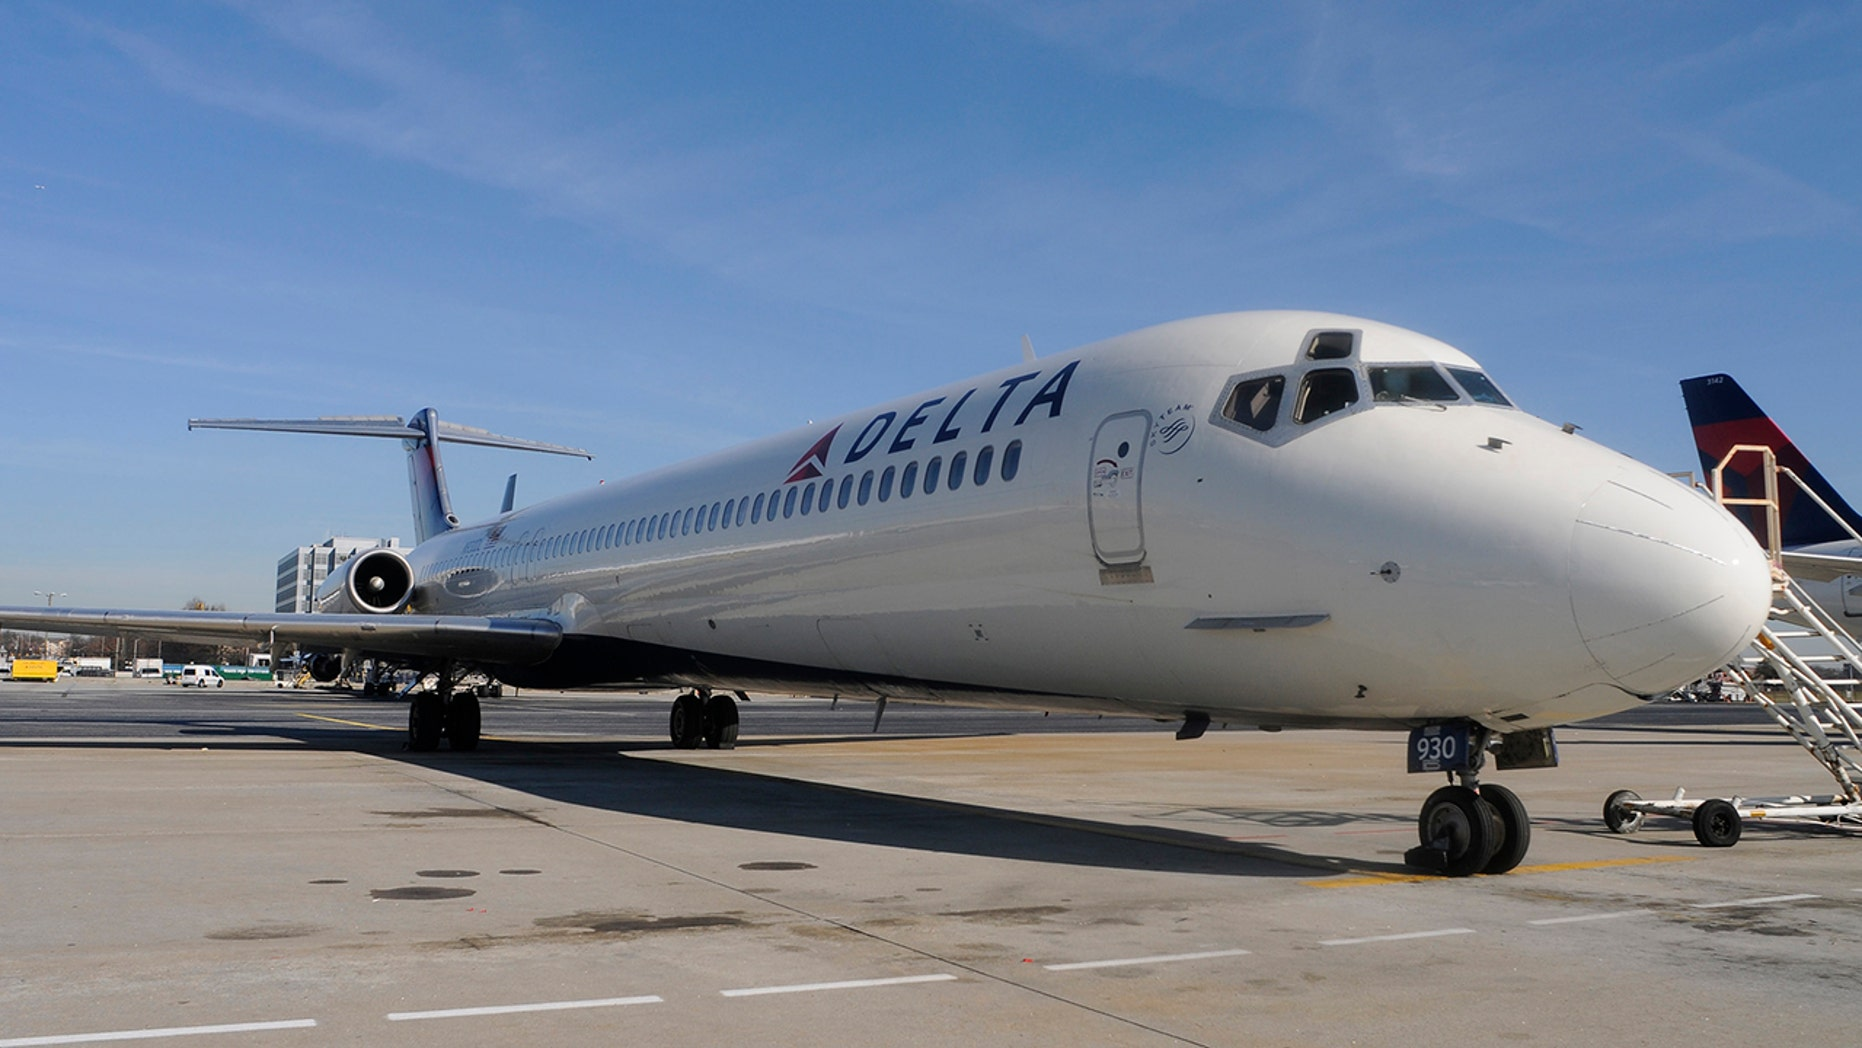 Delta's remaining MD-88 jets are said to be loud, and feature cramped, glare-prone cockpits.